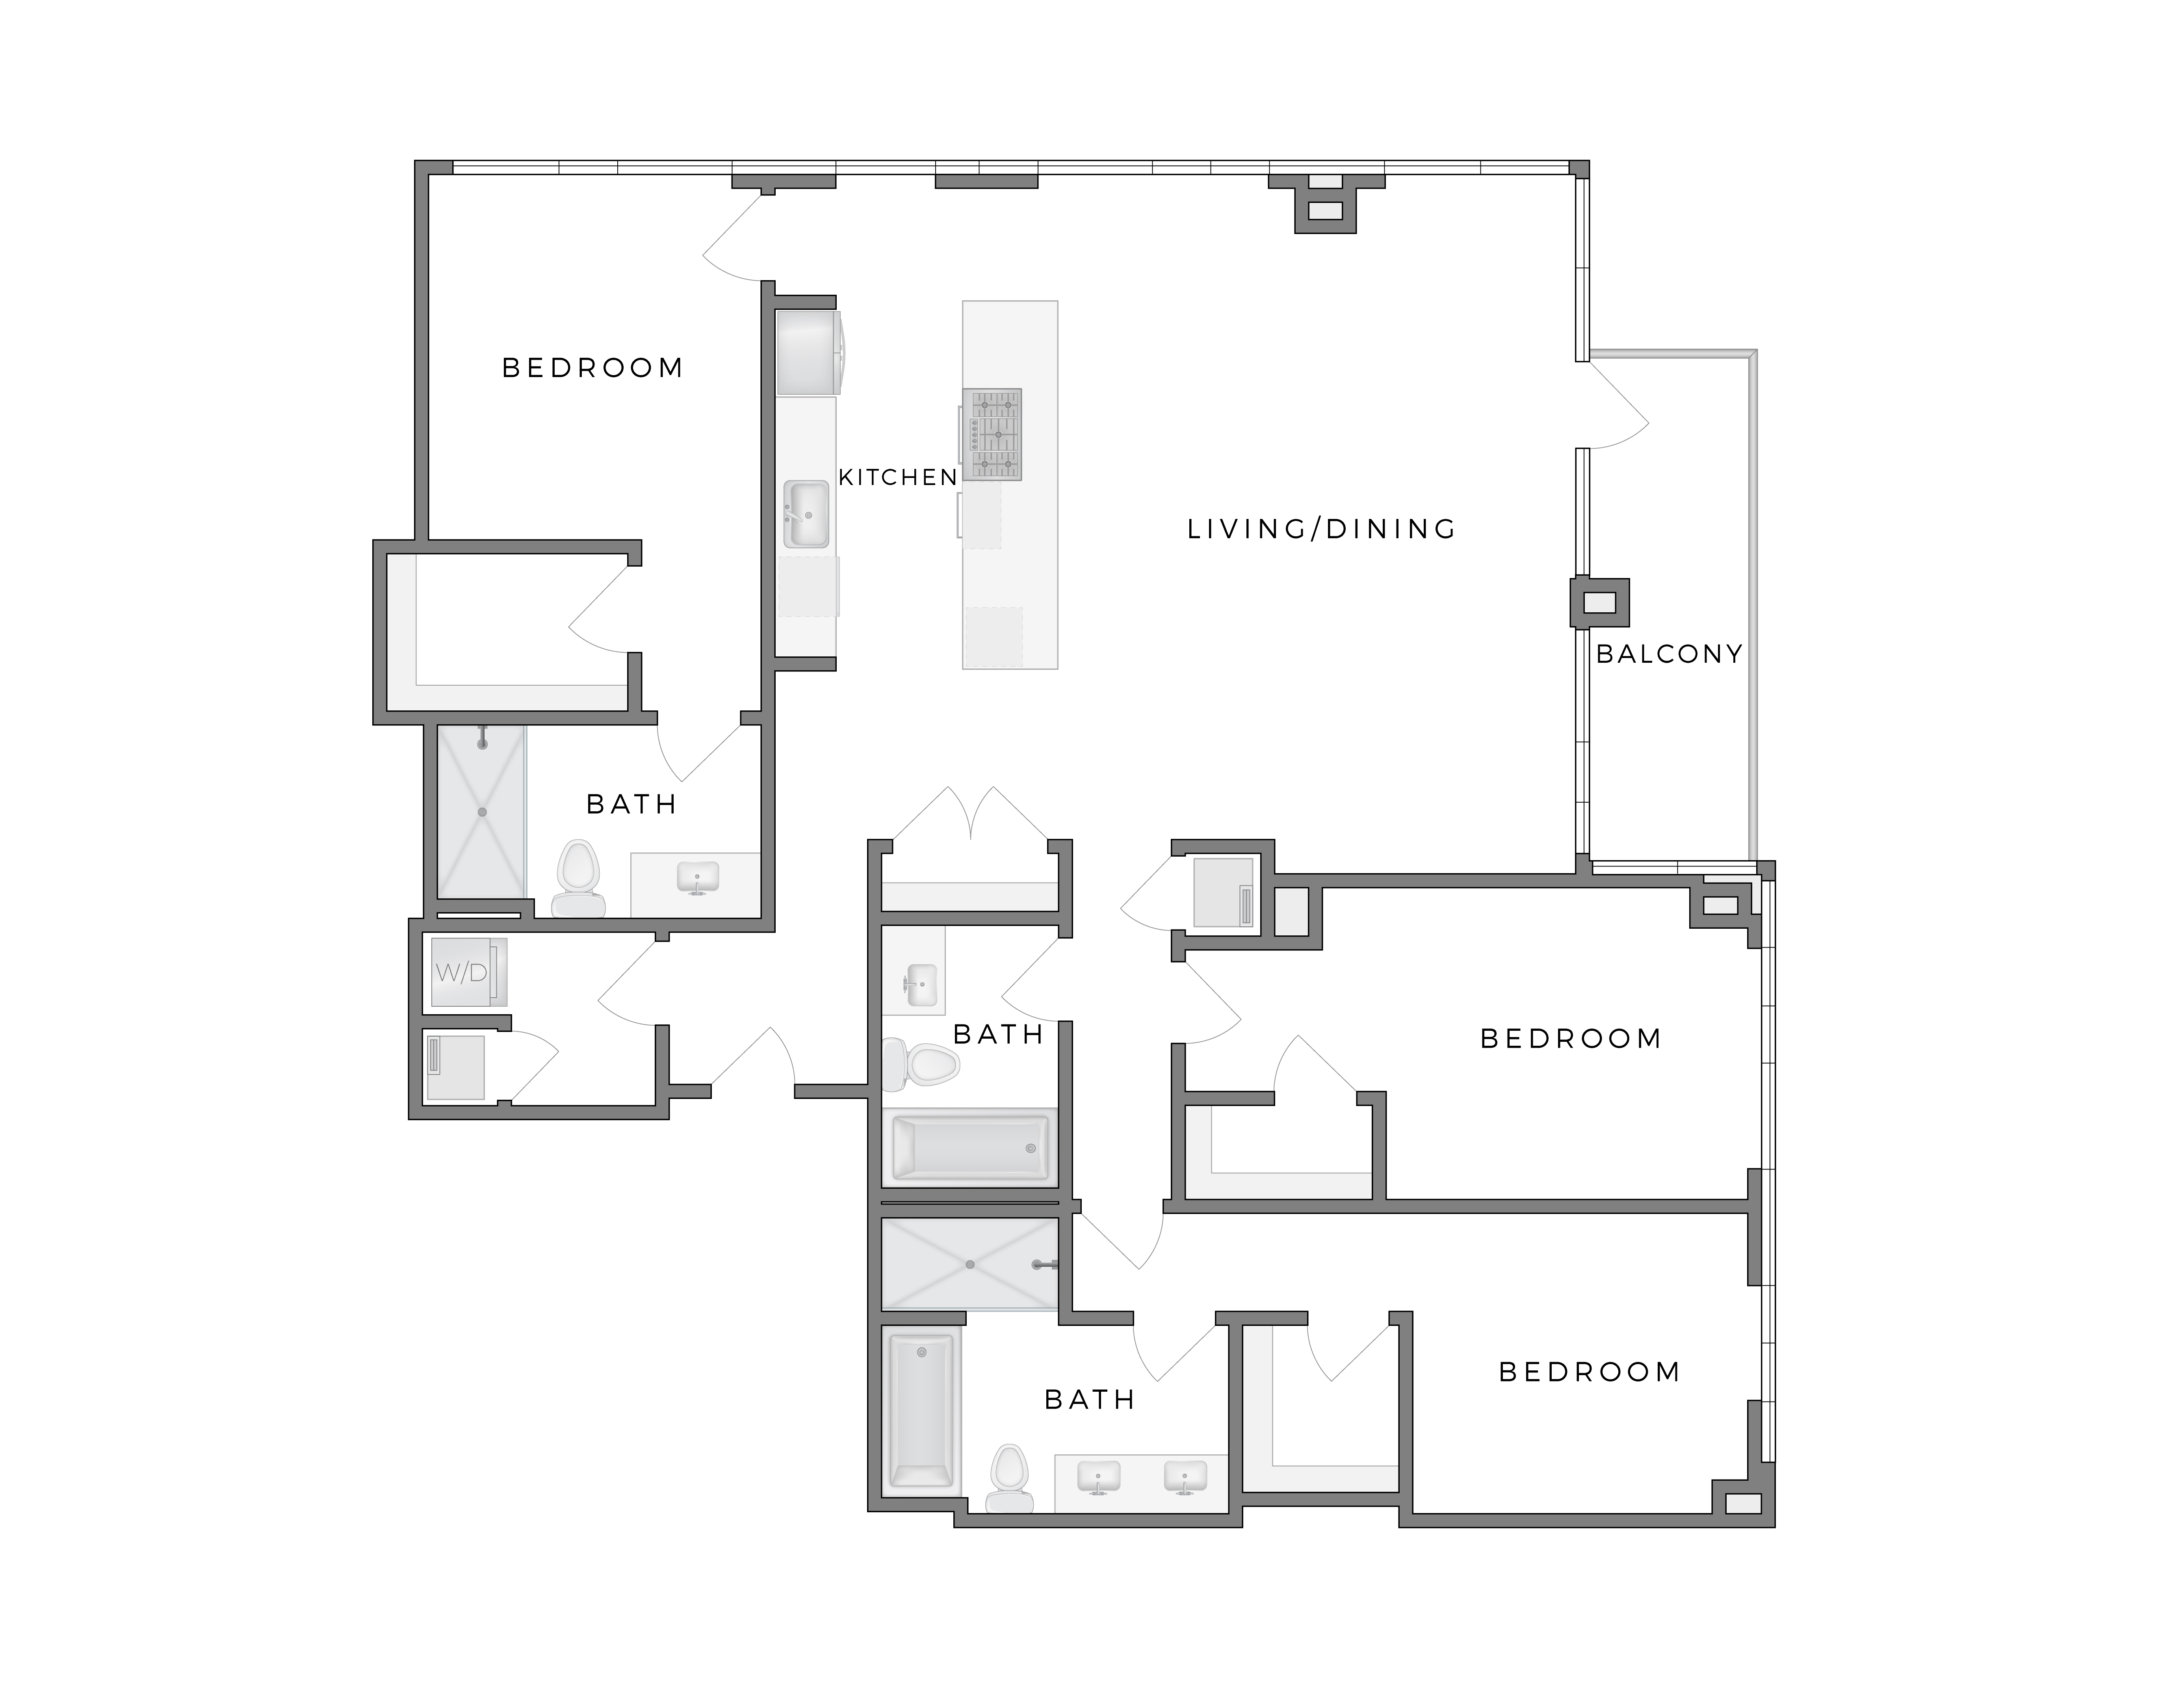 Atelier Warhol 2 apartment floorplan diagram with three bedrooms, three bathrooms, kitchen, living dining area and patio